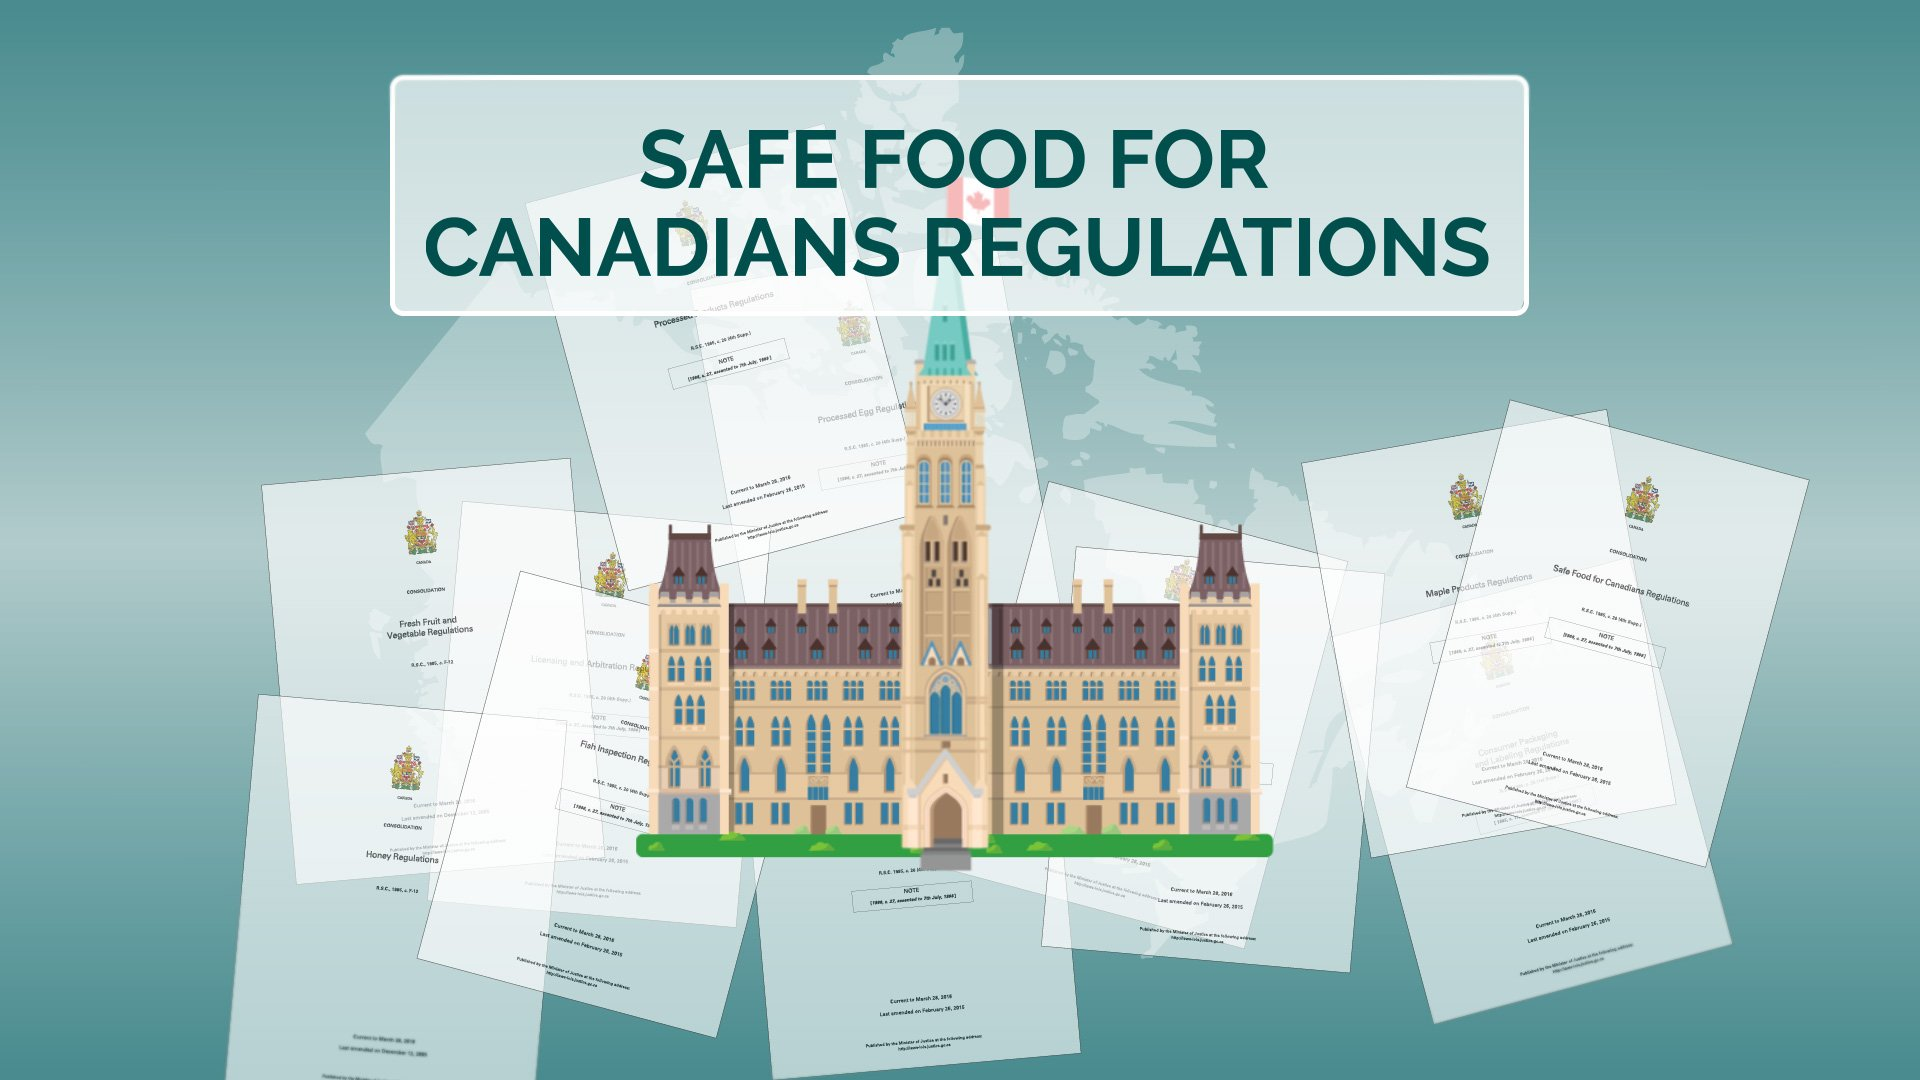 Join our #SMEPME Twitter chat Apr. 11 at noon EDT with @CFIA_Food on the proposed #SafeFoodCan regulations! https://t.co/cfFFTKl9j4 https://t.co/xQ7Fby52ht